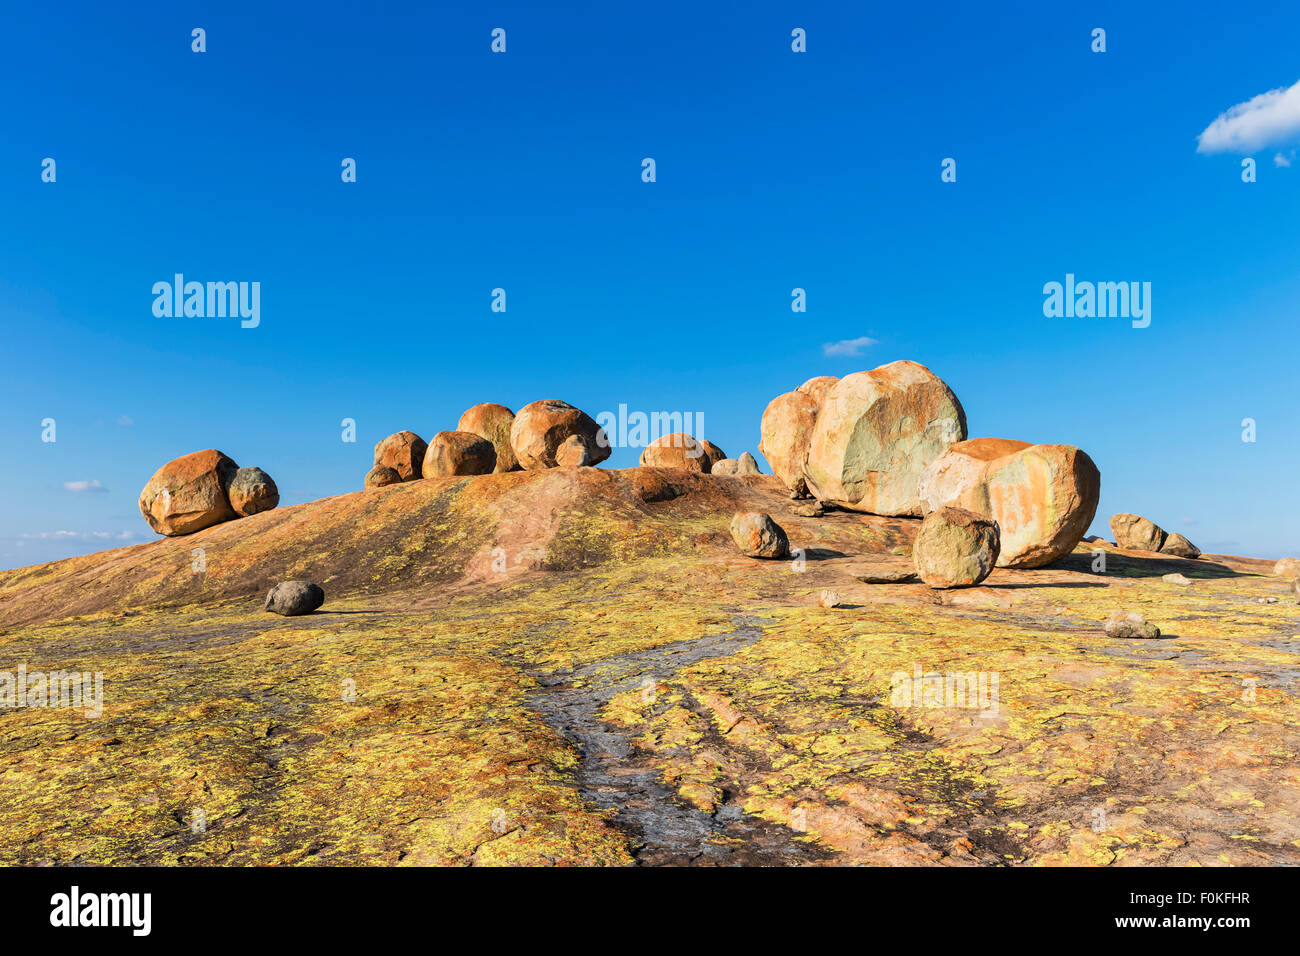 Africa, Zimbabwe, Matobo National Park, Rock formation with tomb of Cecil Rhodes - Stock Image